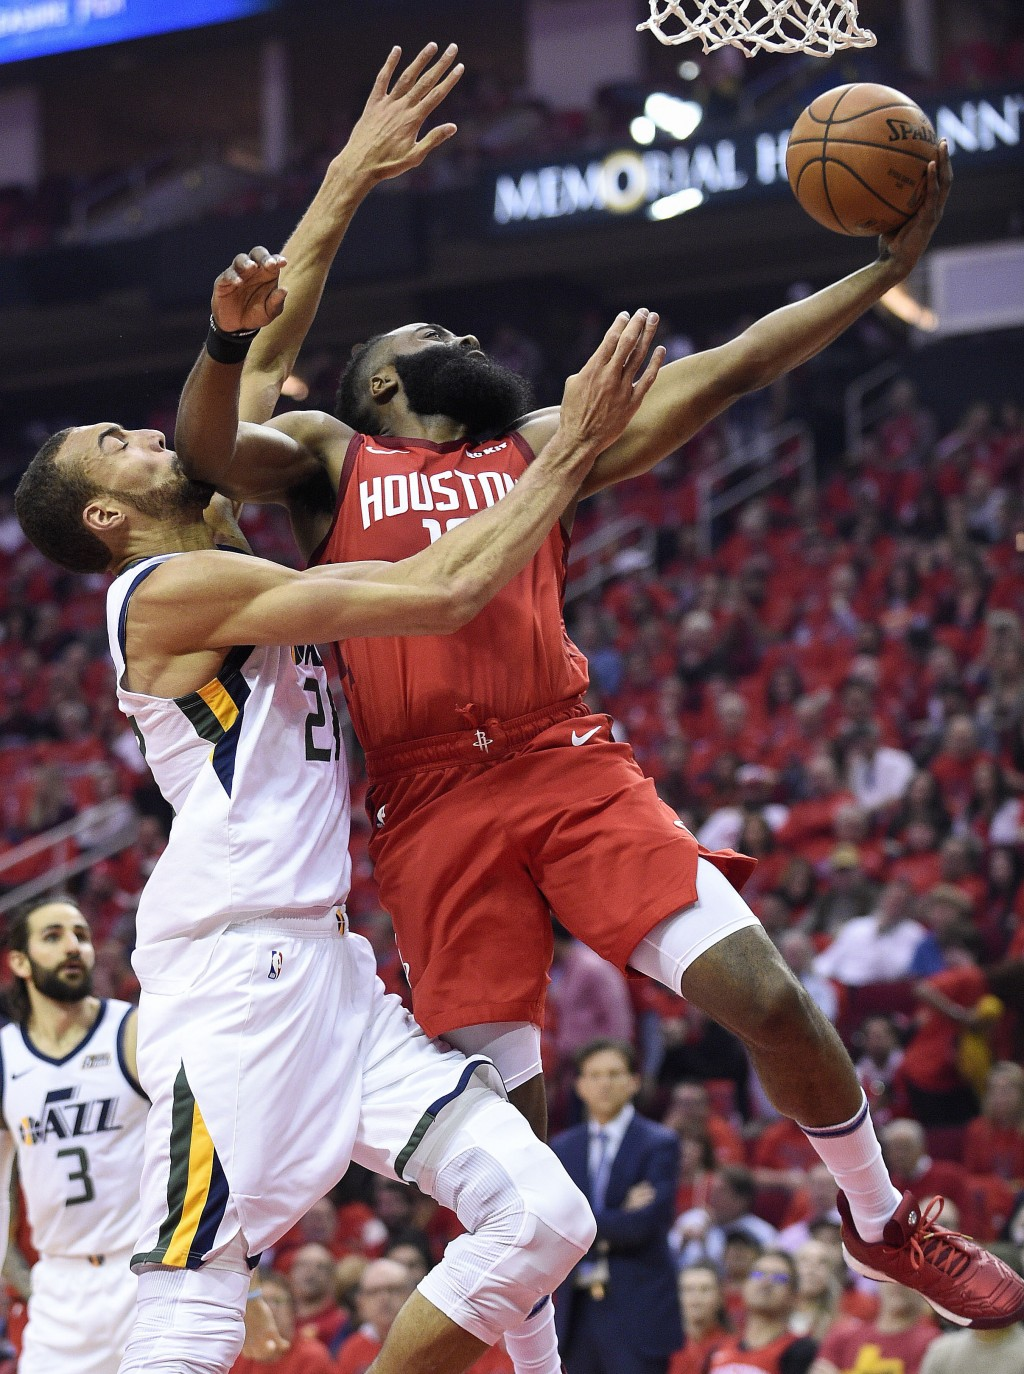 Houston Rockets guard James Harden, right, drives to the basket as Utah Jazz center Rudy Gobert defends during the first half of Game 1 of an NBA bask